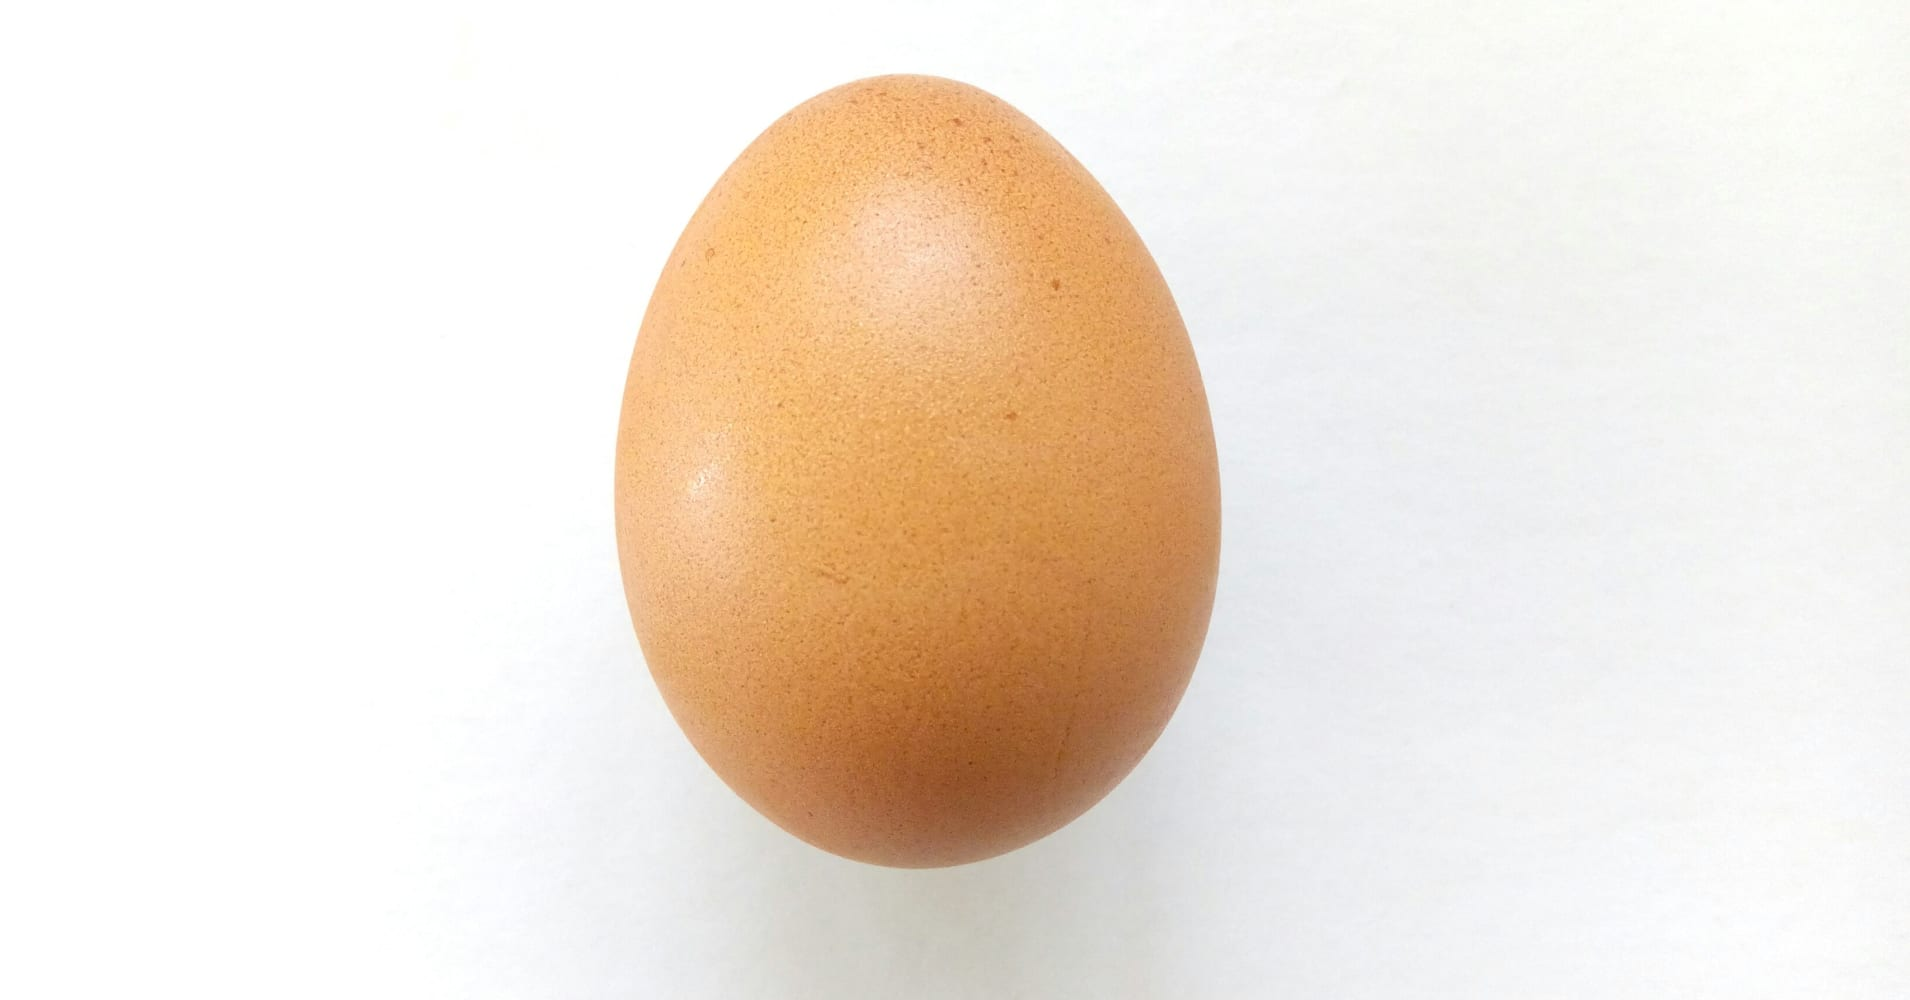 World Record Egg on Instagram Could Make its Creator Millions as Marketers Chase its Viral Success